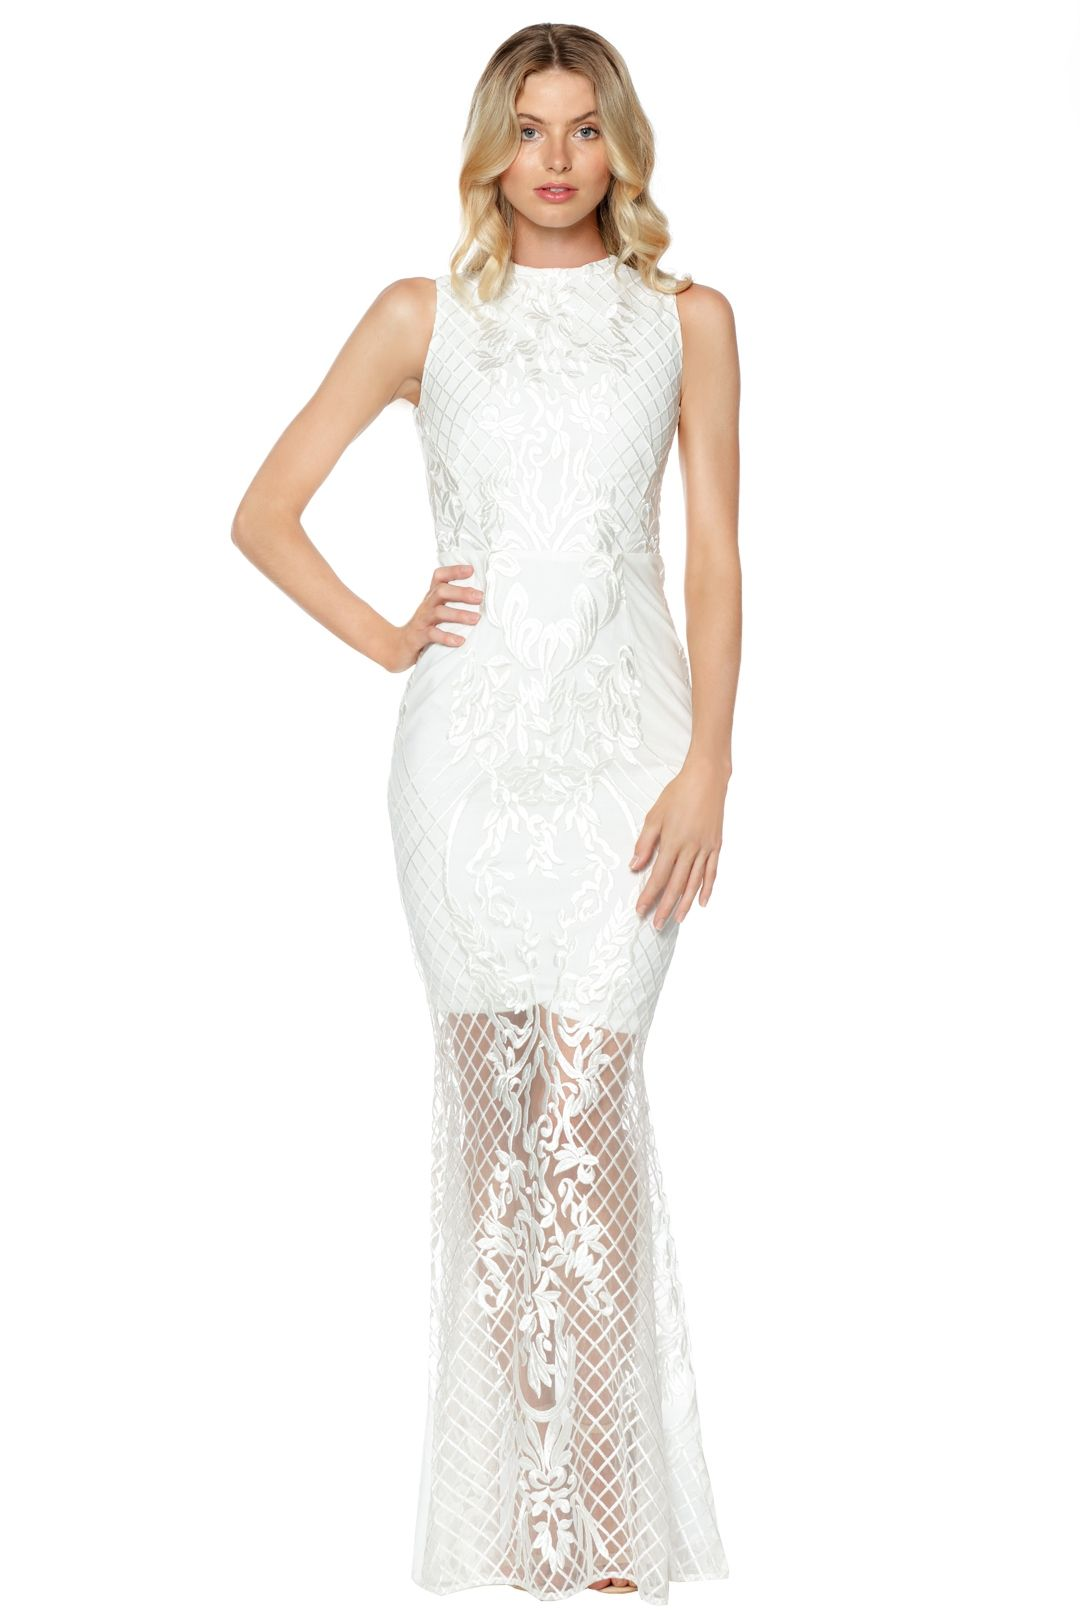 Grace and Hart - Ignite Passion Gown - White - Front